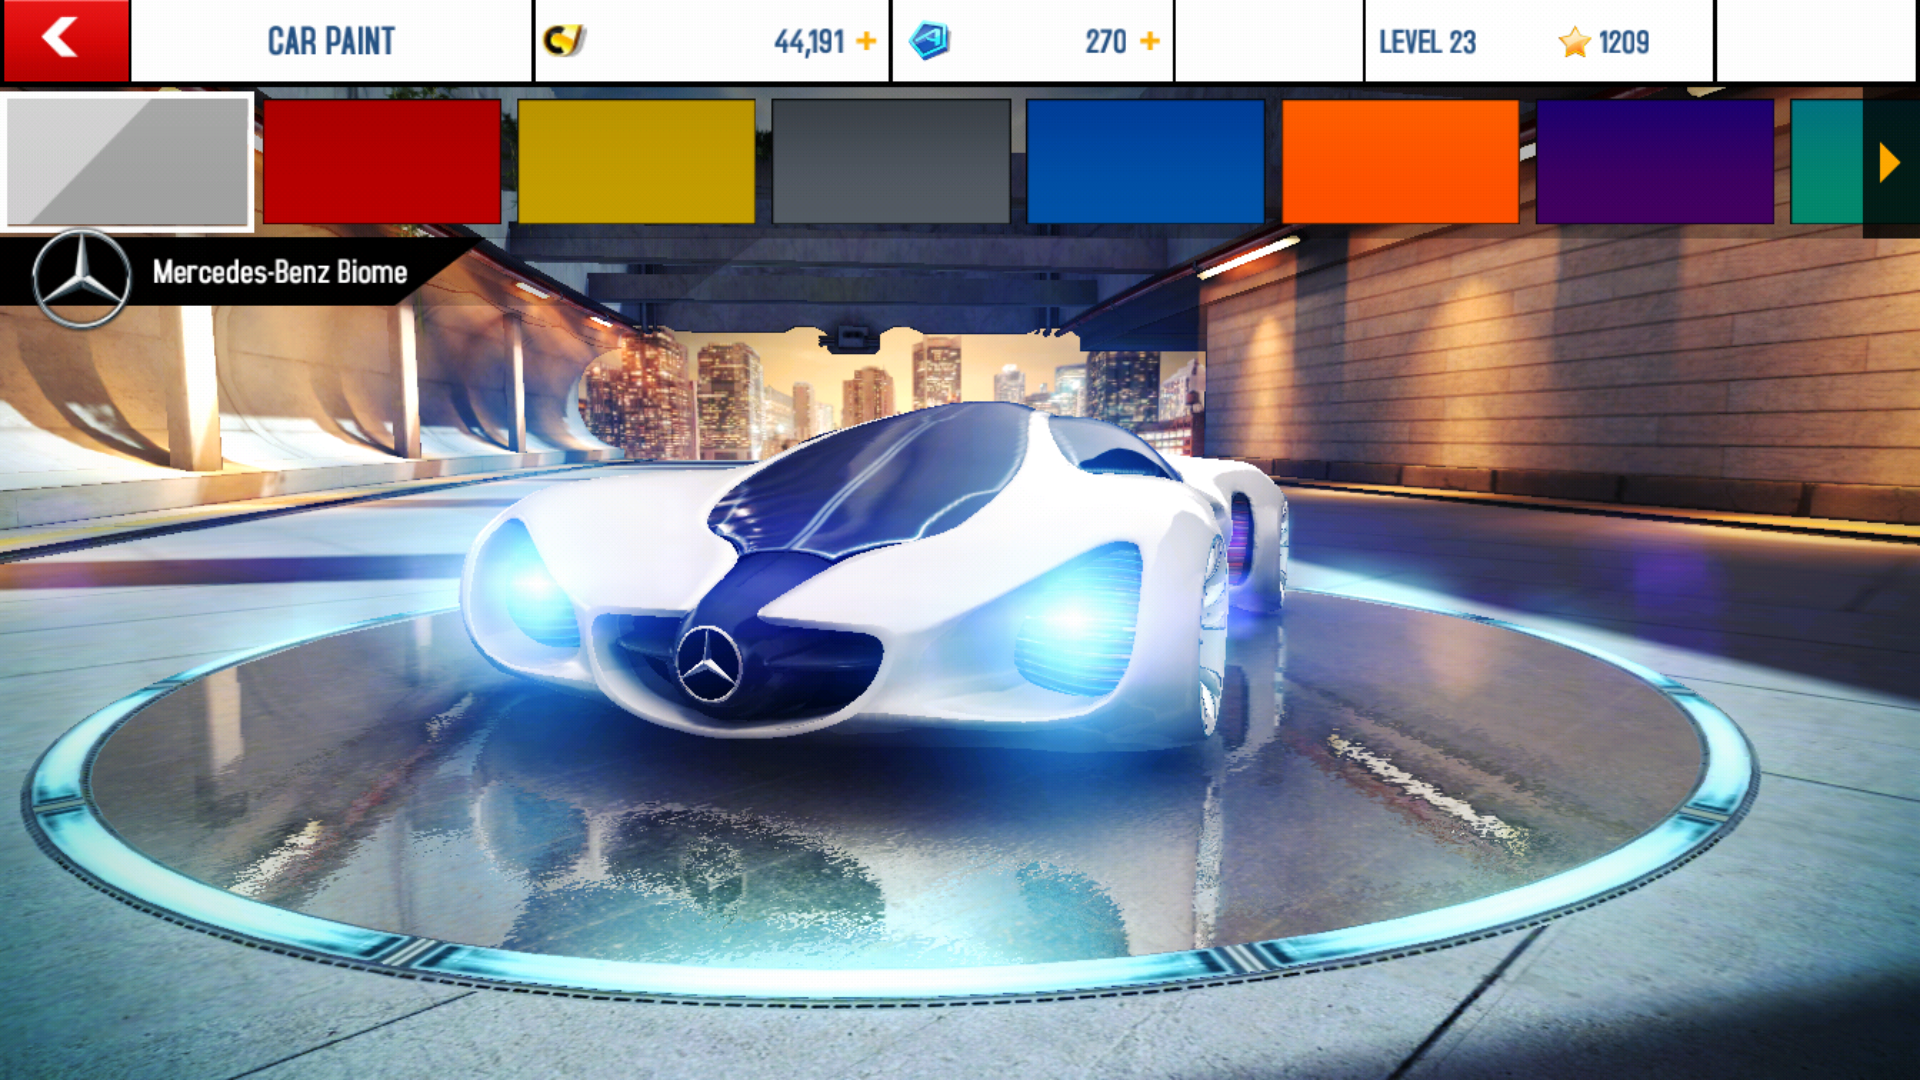 mercedes benz silver lightning asphalt 8. image mercedesbenz biome colorspng asphalt wiki fandom powered by wikia mercedes benz silver lightning 8 r